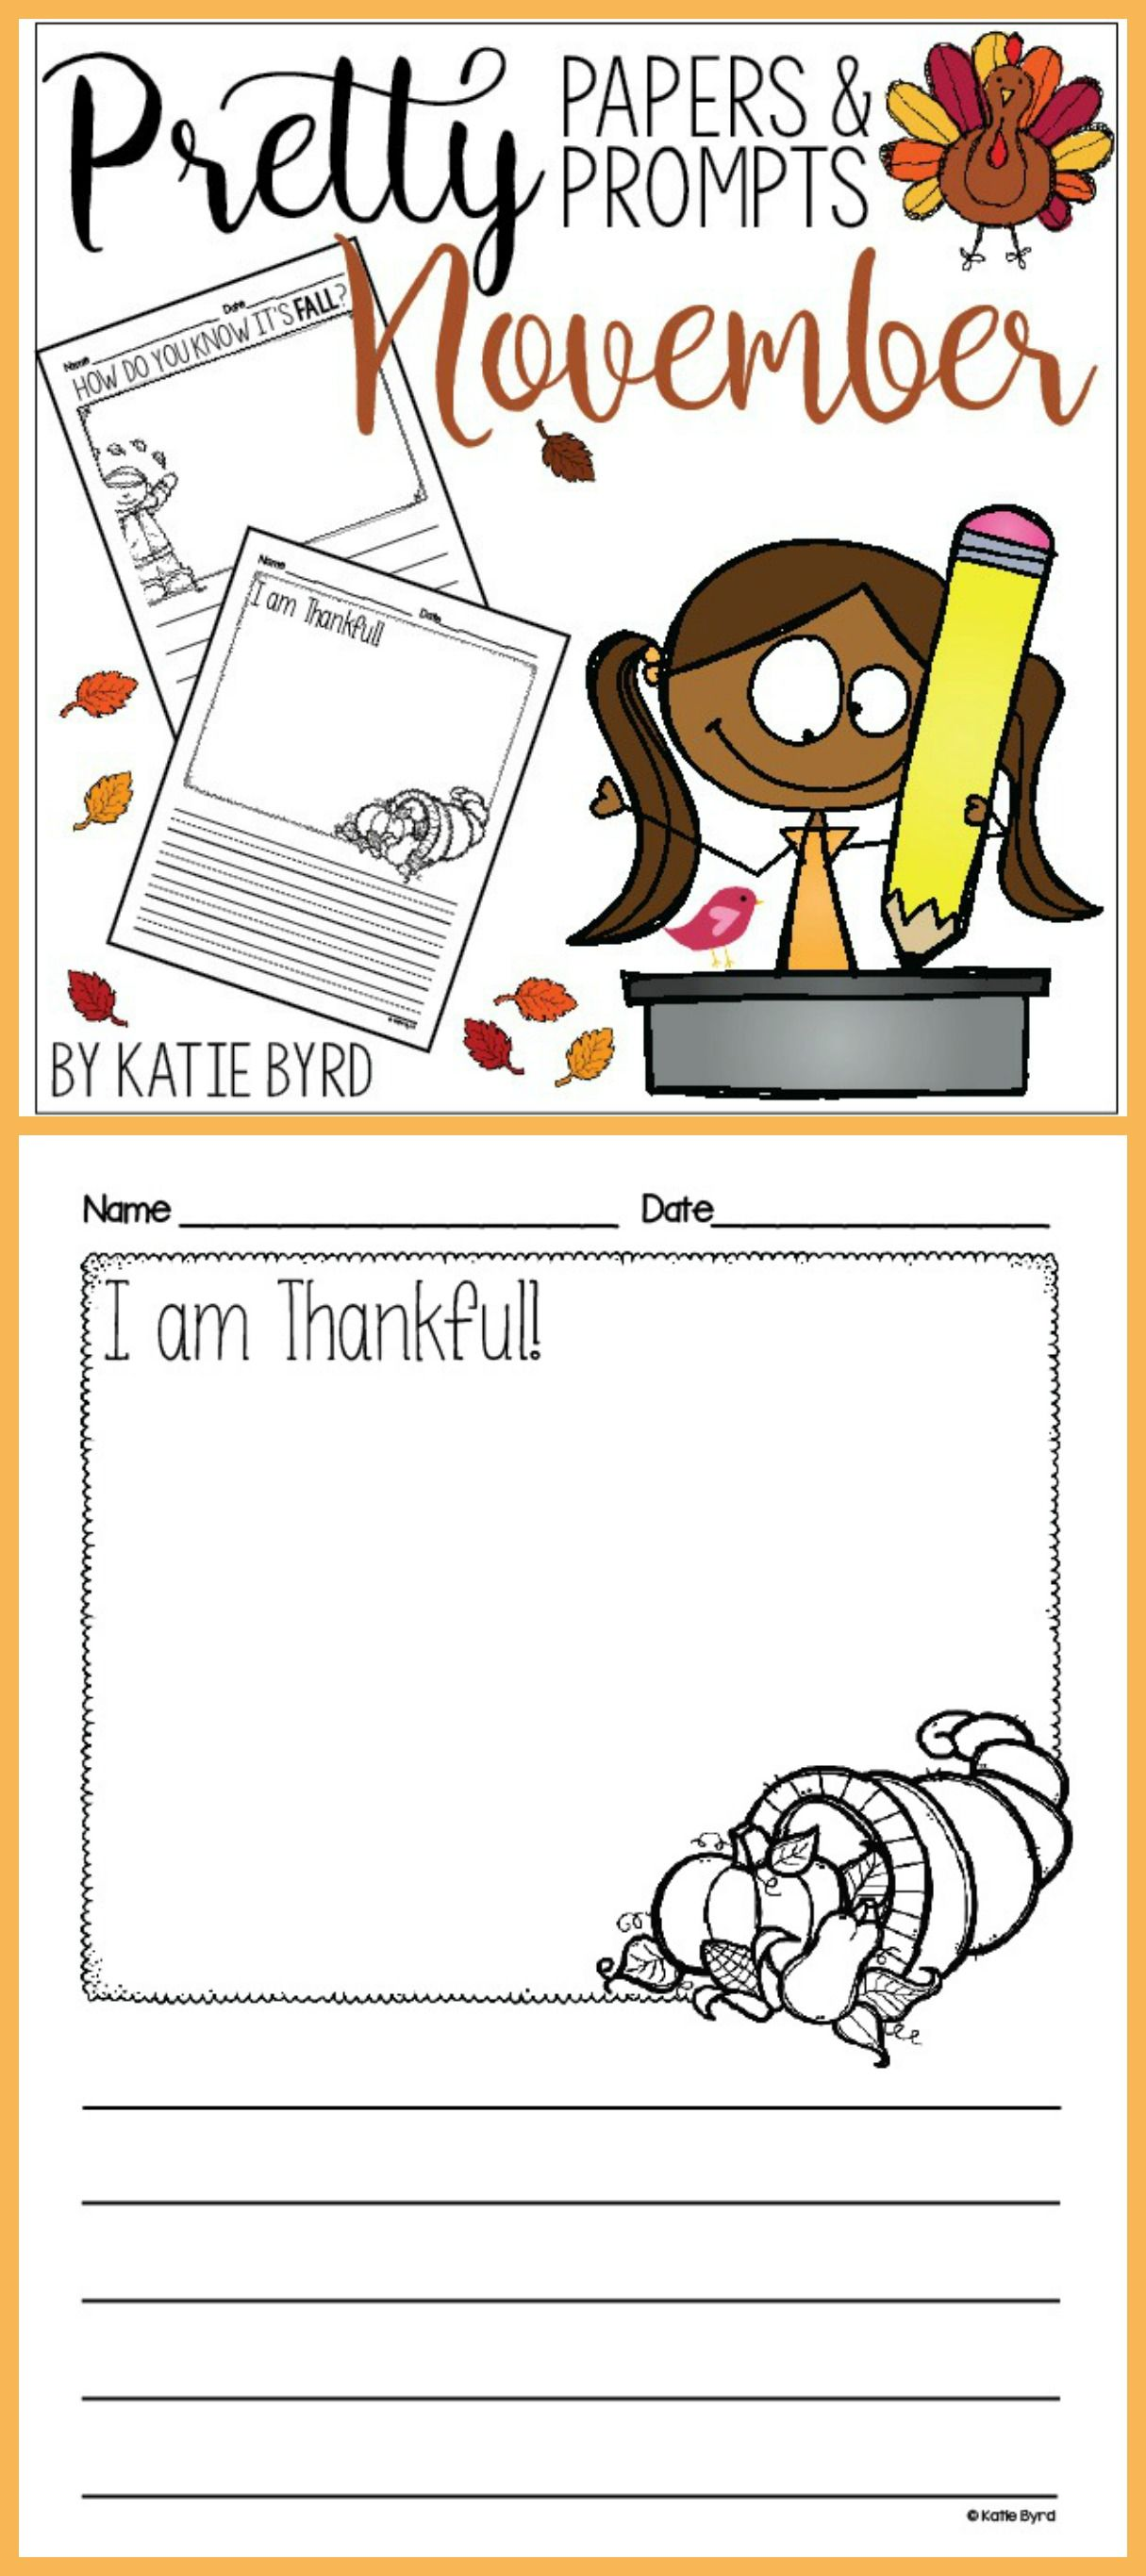 Writing Activities - NOVEMBER Pretty Papers & Prompts ...